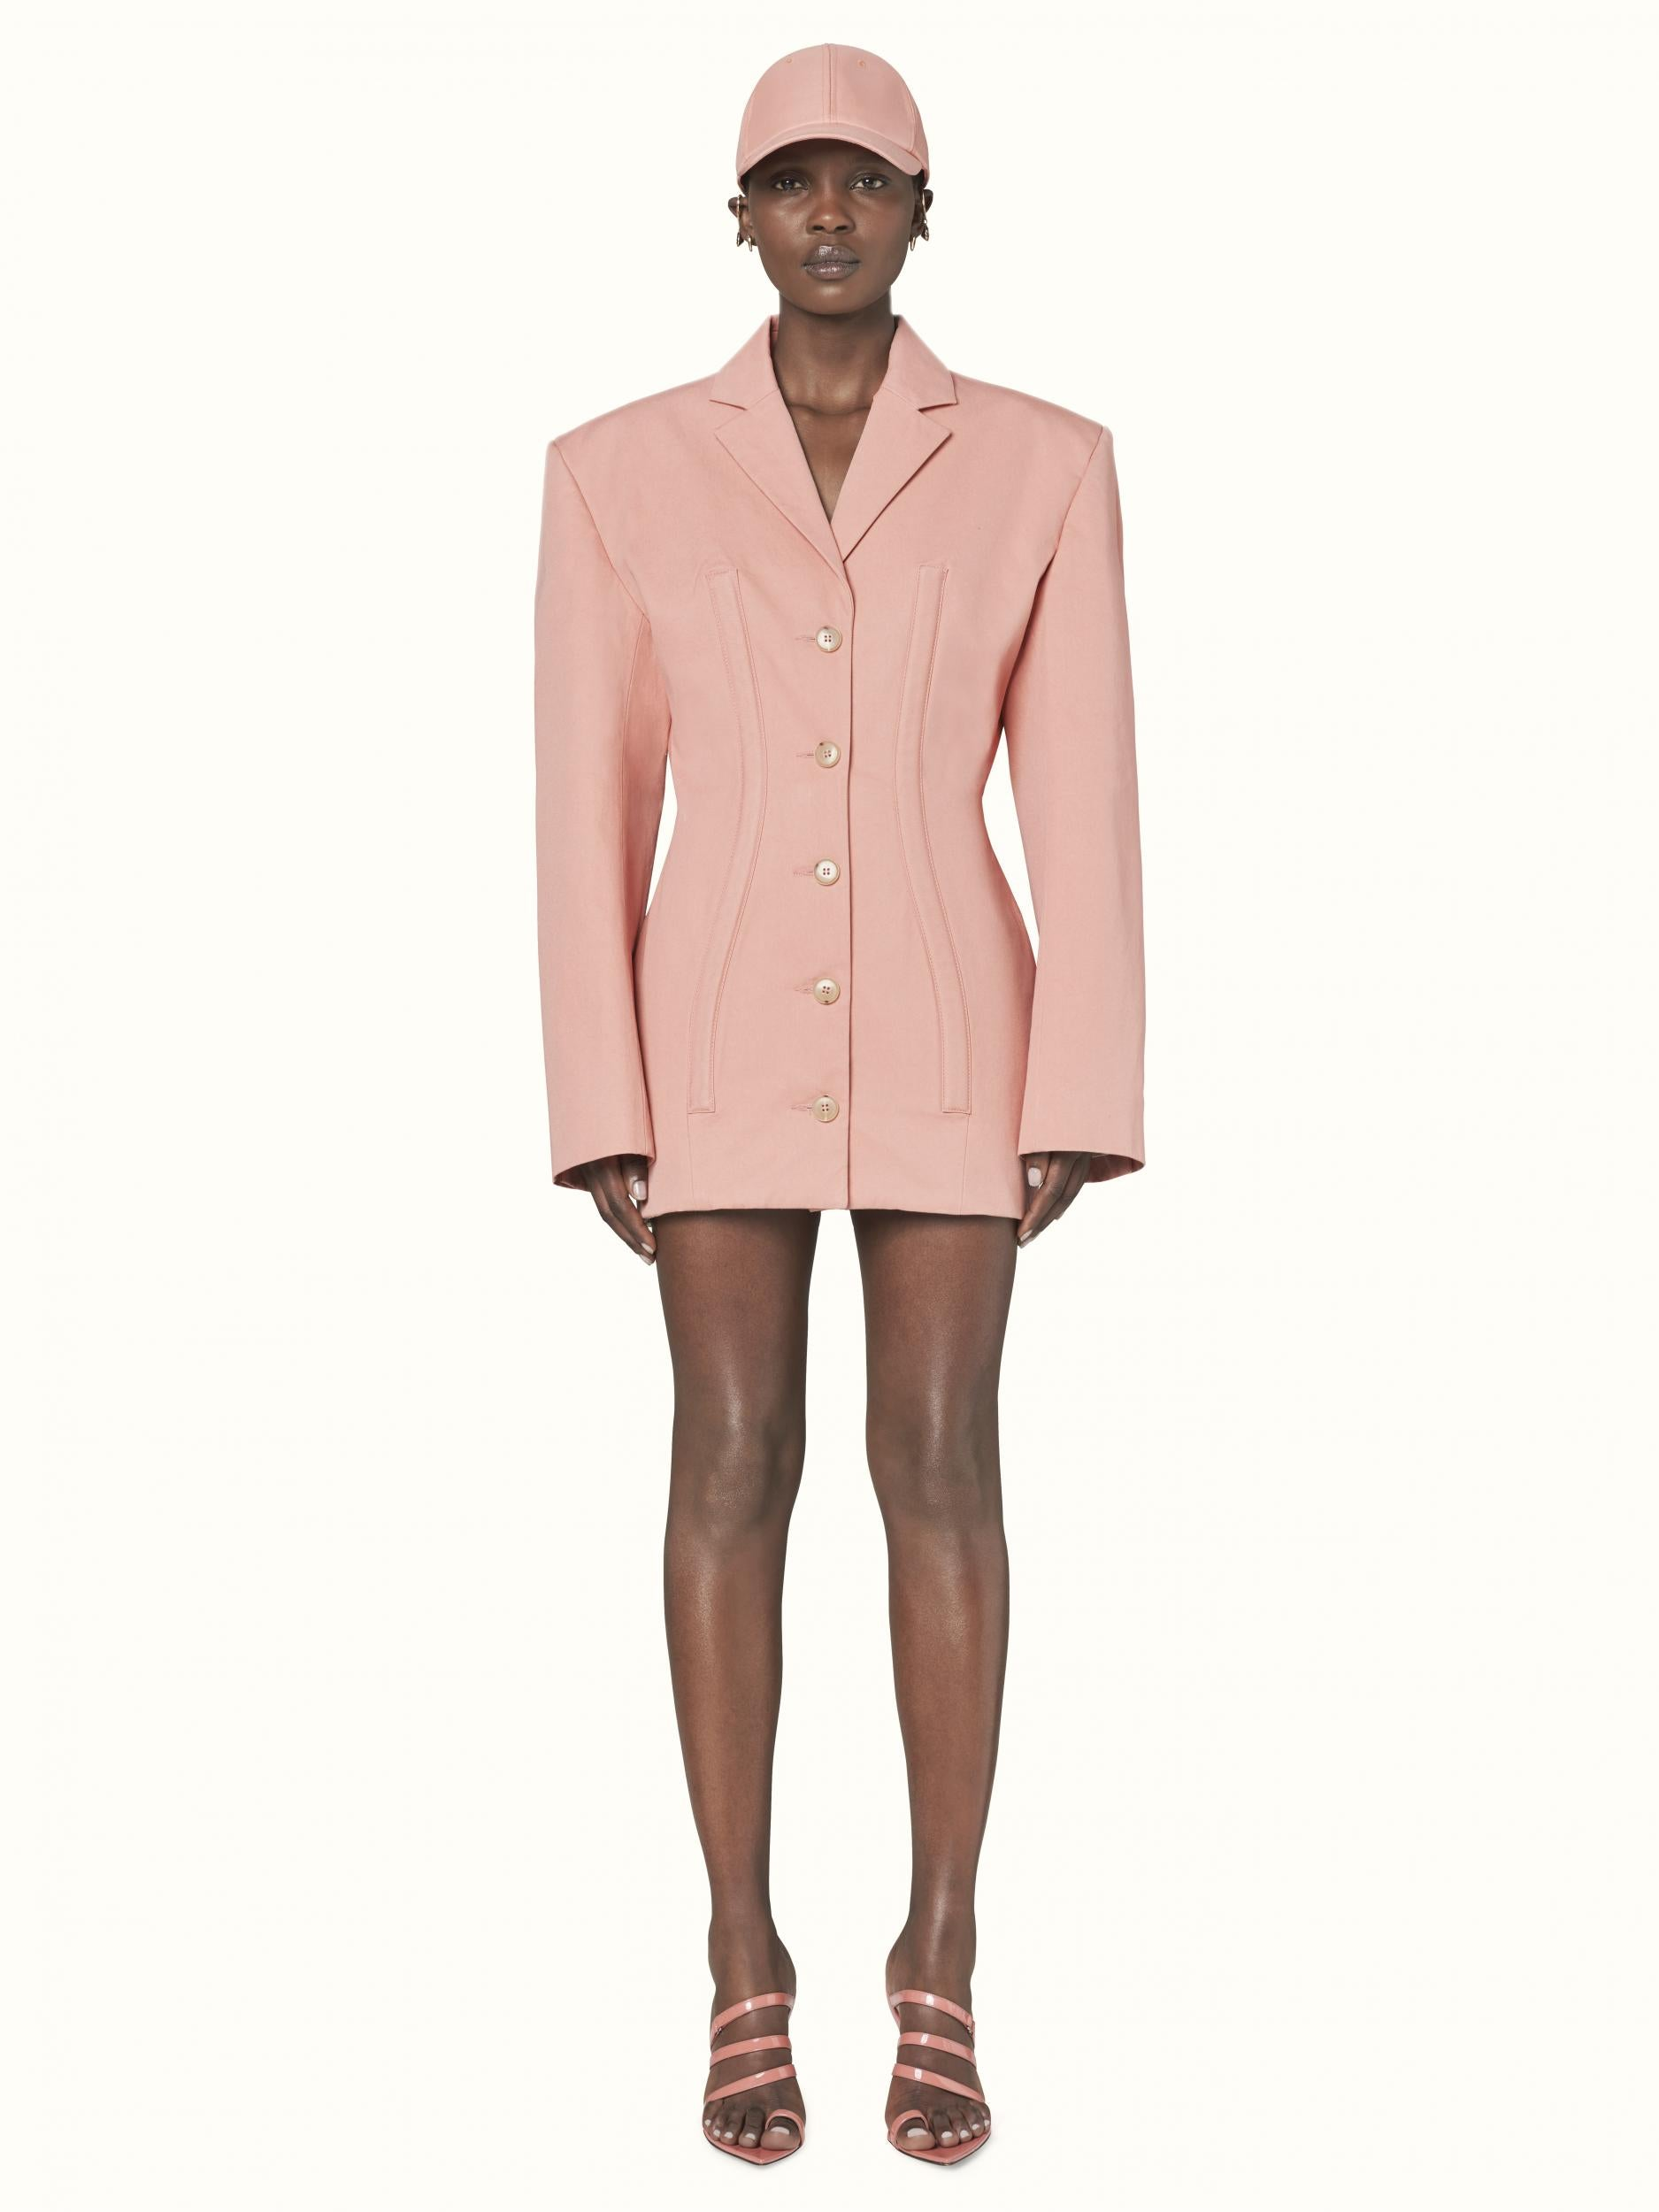 new concept 2b1df 8a207 Rihanna Fenty collection: Lookbook, prices, release date and ...